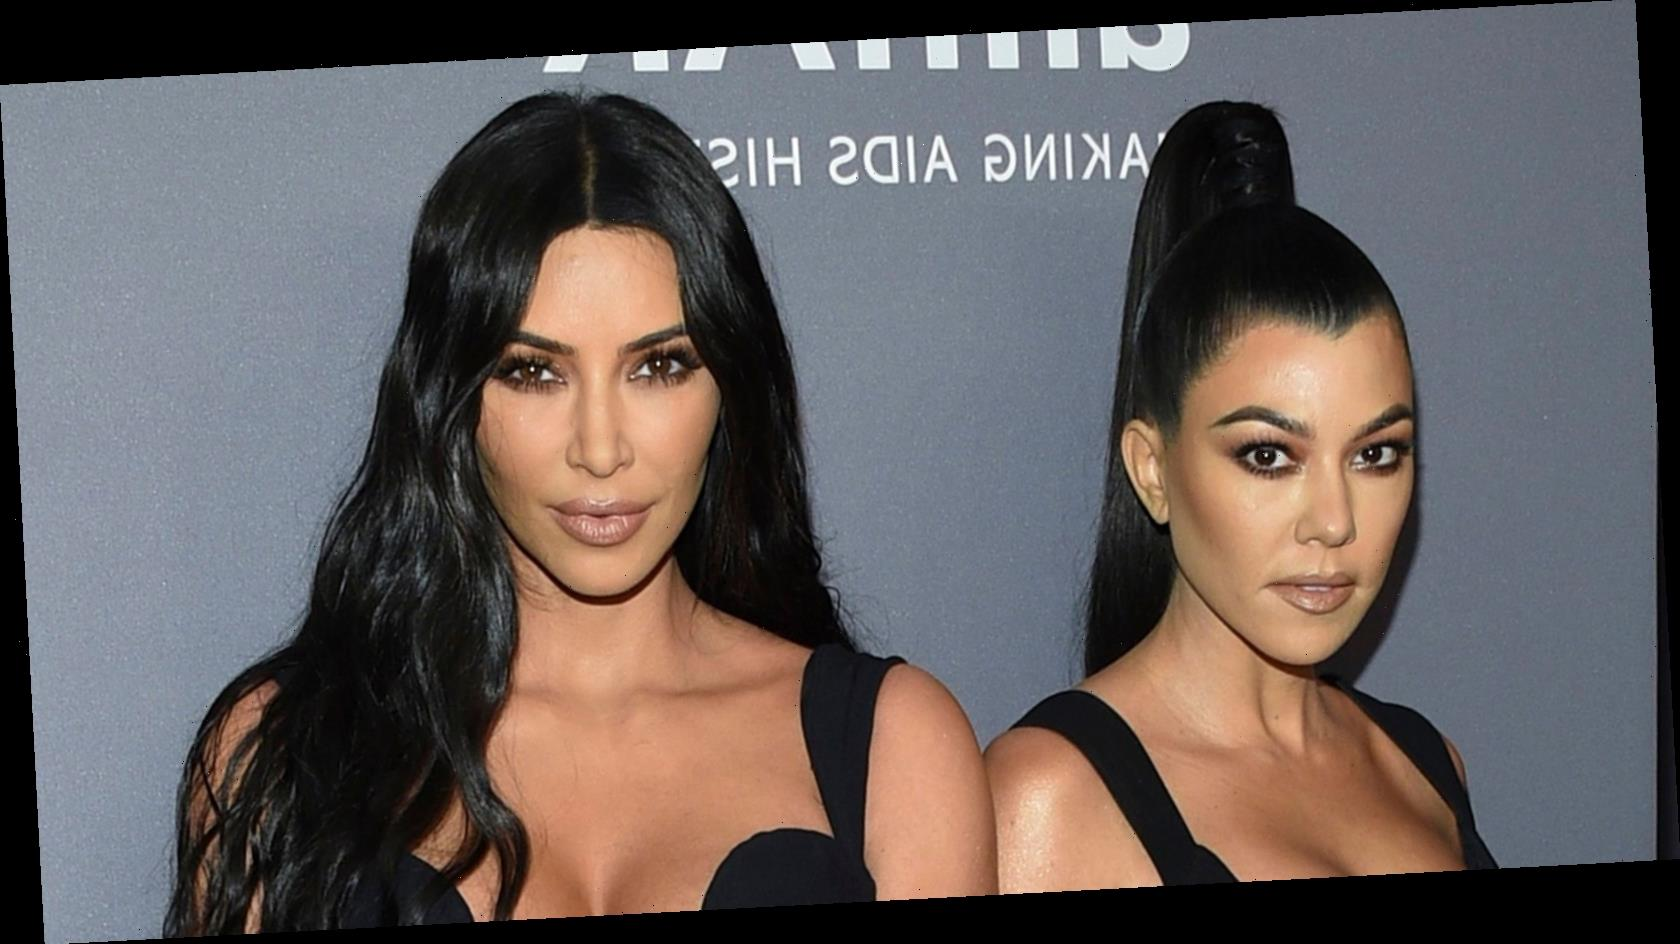 Kim Admits She's 'So Mean' to Kourtney During 'KUWTK' Finale